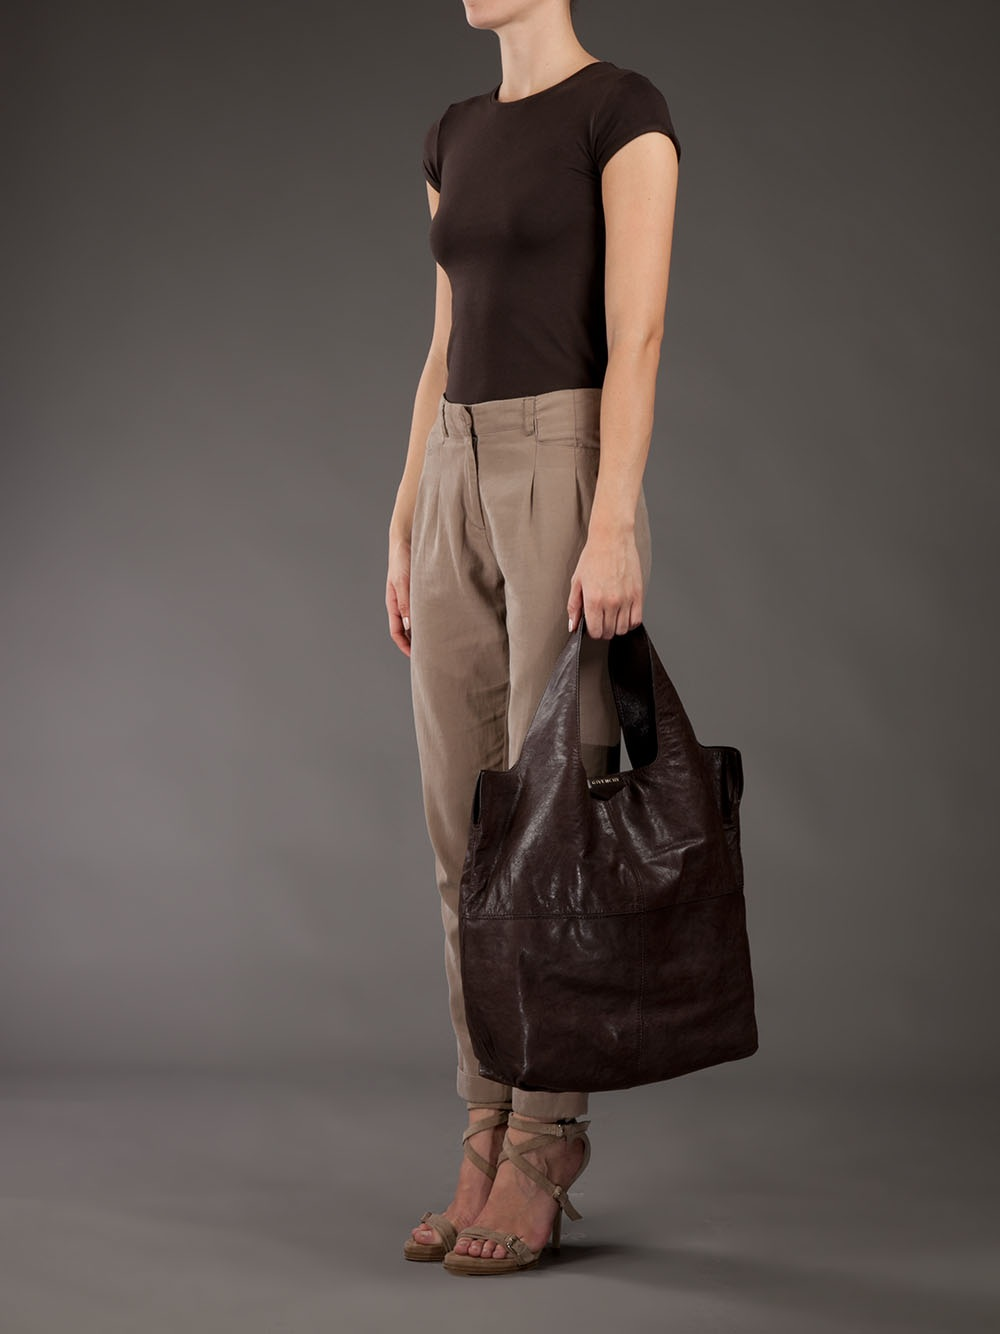 Givenchy George V Bag in Brown - Lyst